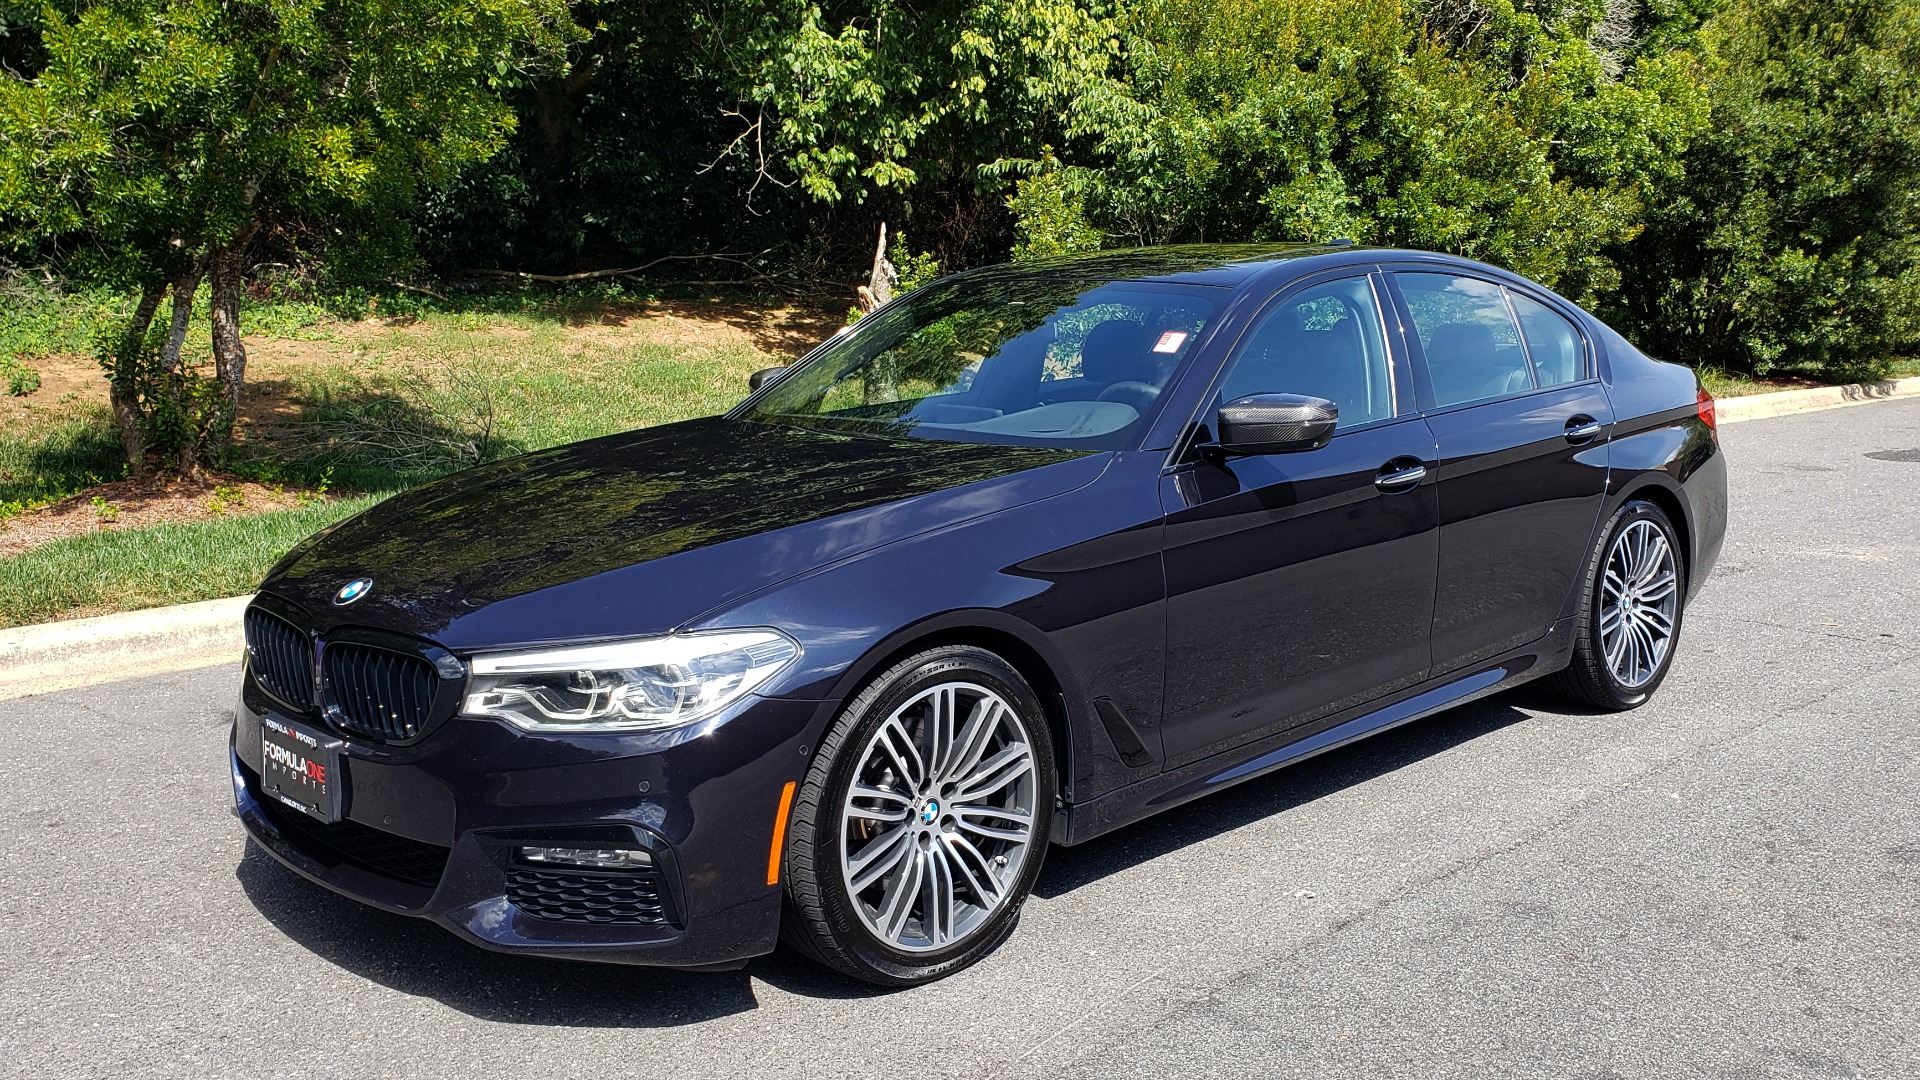 Used 2017 BMW 5 SERIES 540I XDRIVE M-SPORT / PREMIUM / NAV / HUD / SUNROOF / REARVIEW for sale $34,995 at Formula Imports in Charlotte NC 28227 1